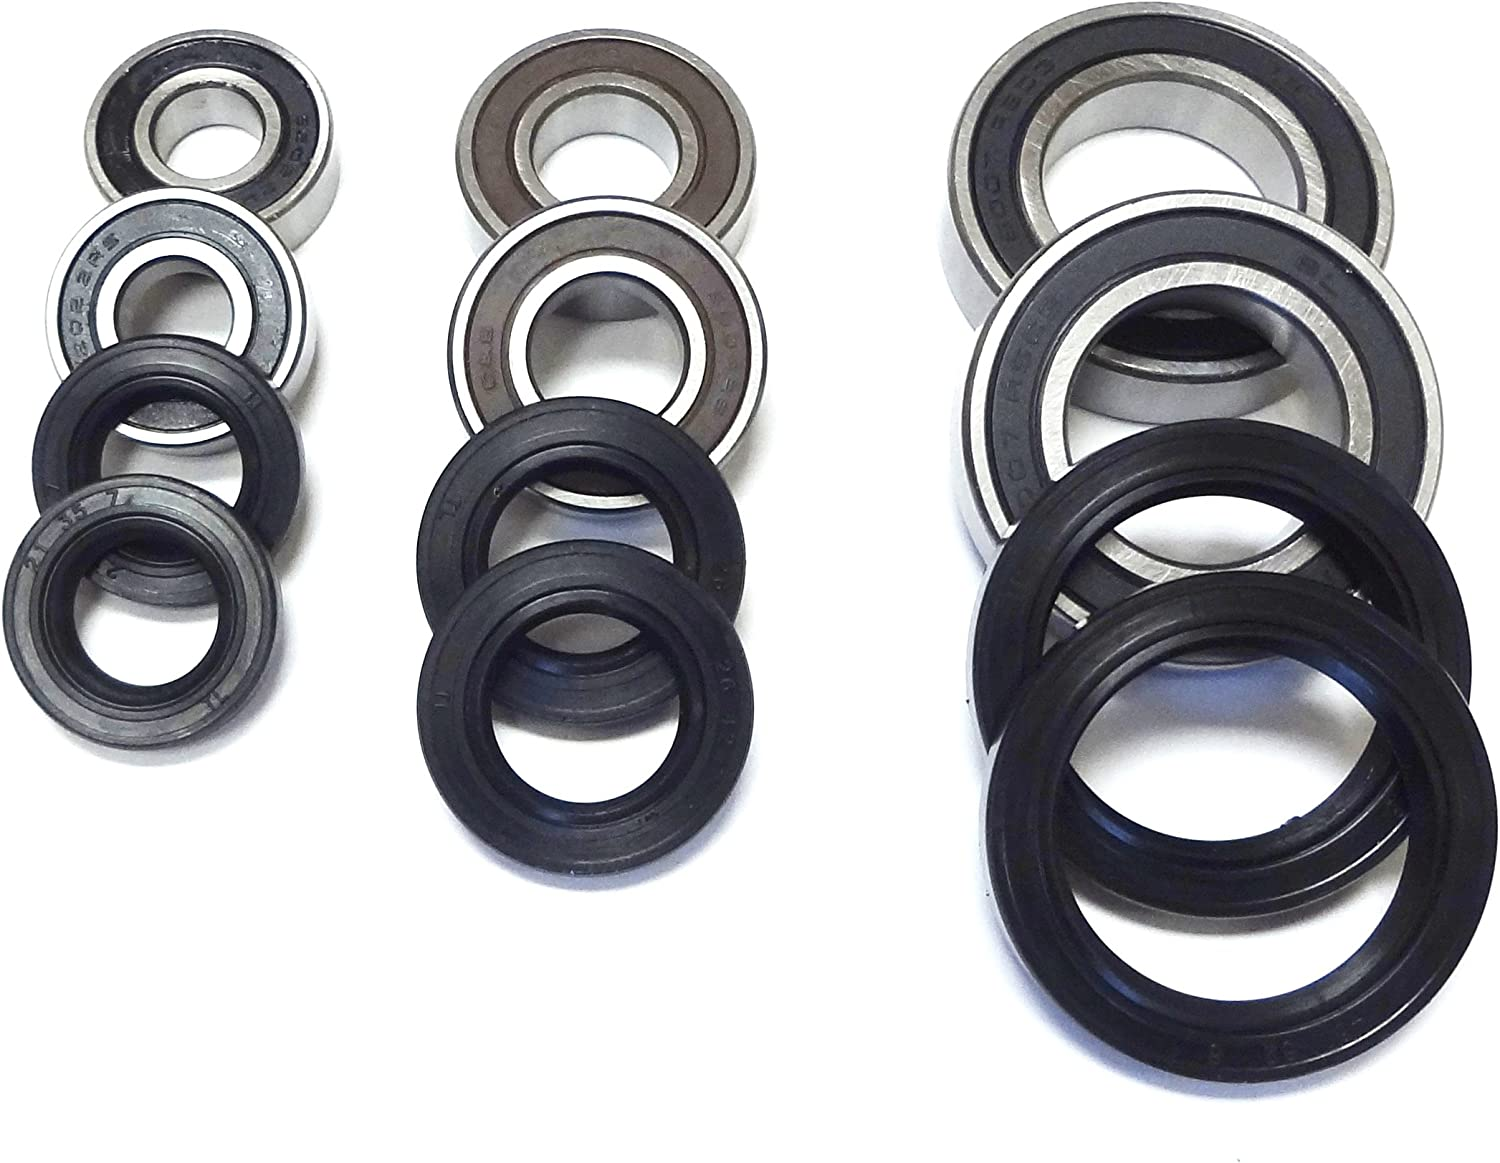 All Front Rear Wheel Axle Bearings and Seals Raptor YFM350 2004-2013